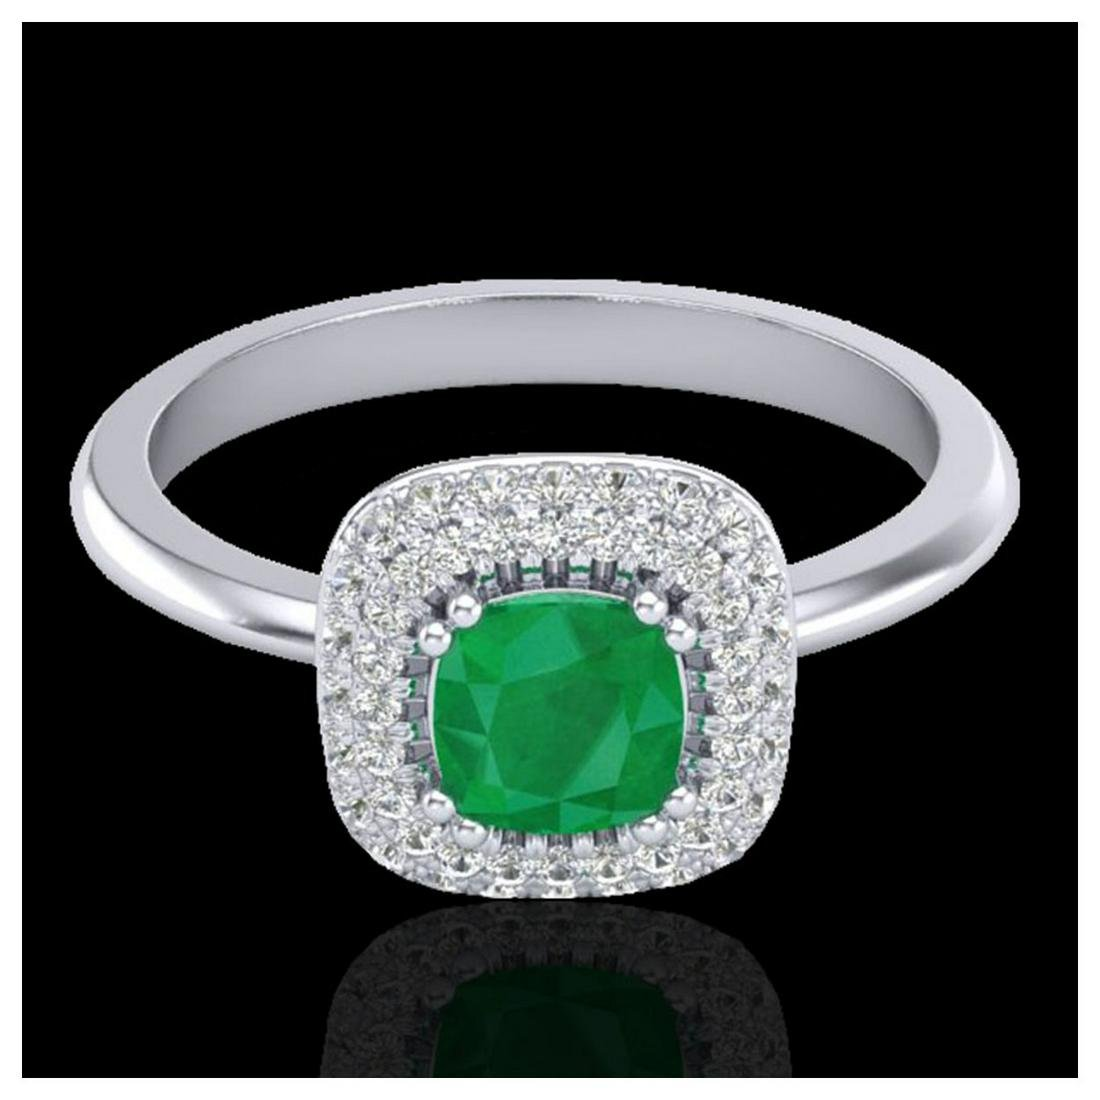 1.16 ctw Emerald & VS/SI Diamond Ring Halo 18K White